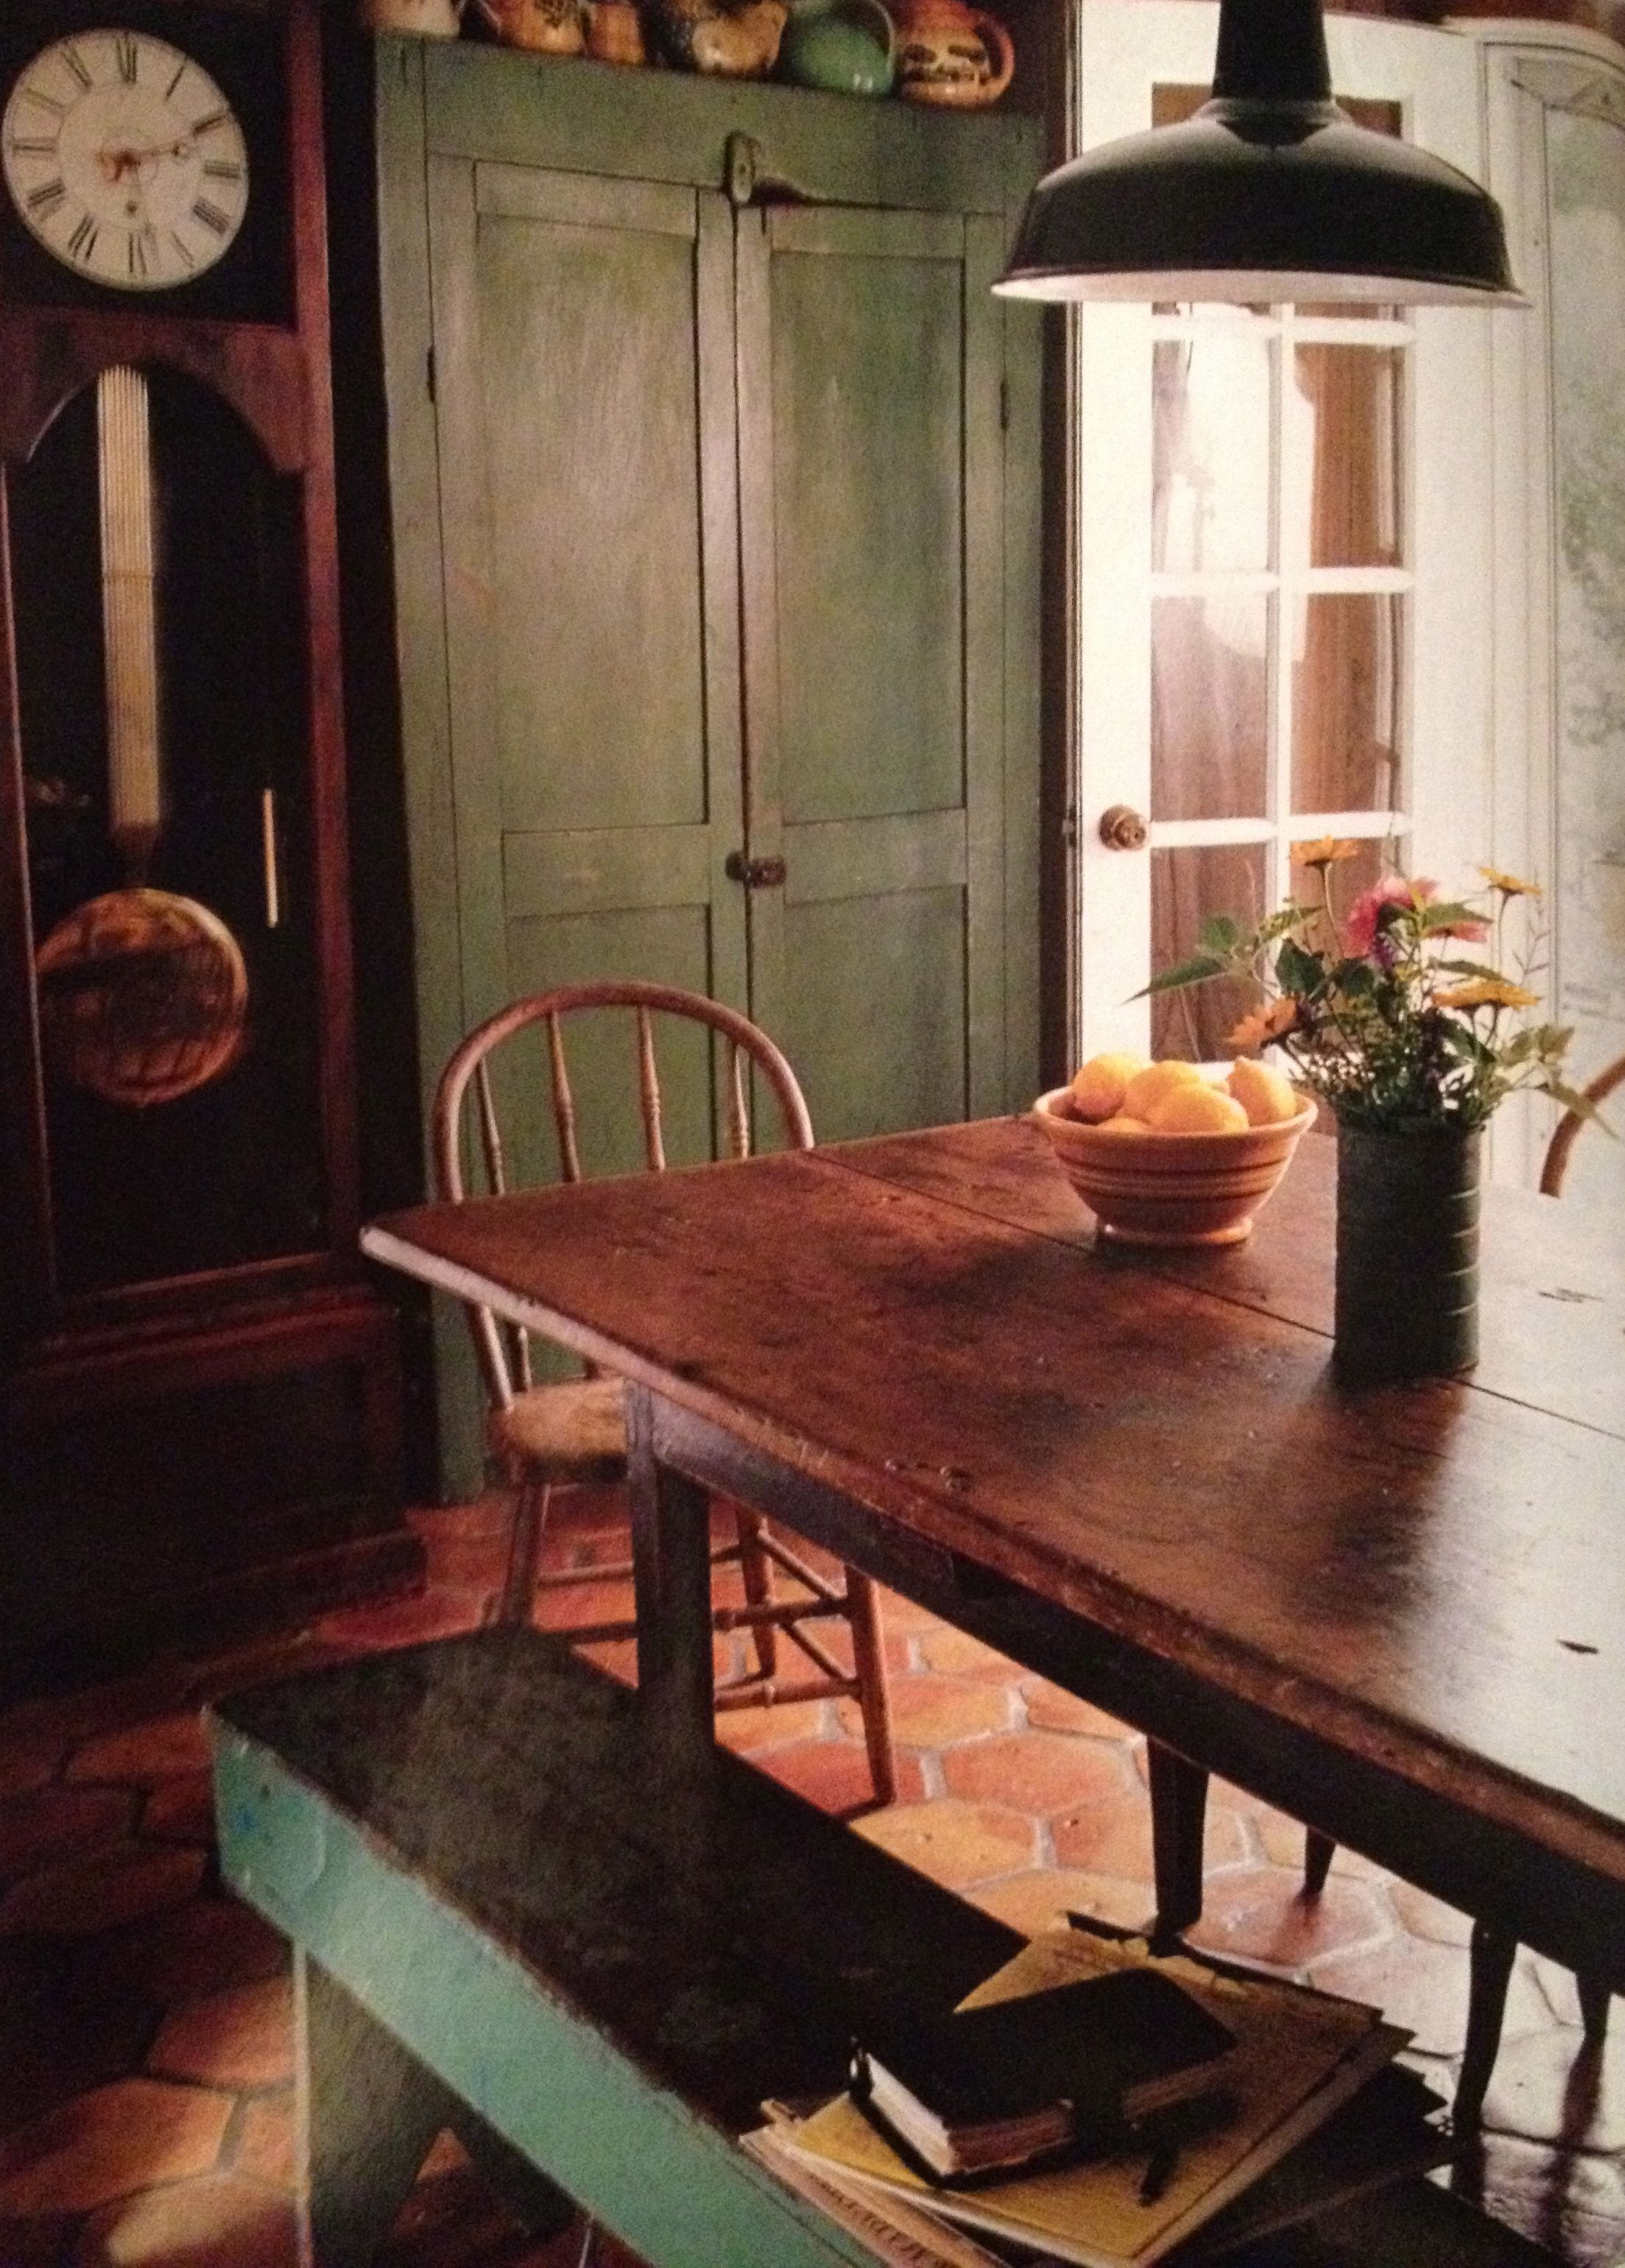 The Bench At The Dining Room Table Reminds Me Of My Grandmother's Fascinating Primitive Dining Room Sets Review